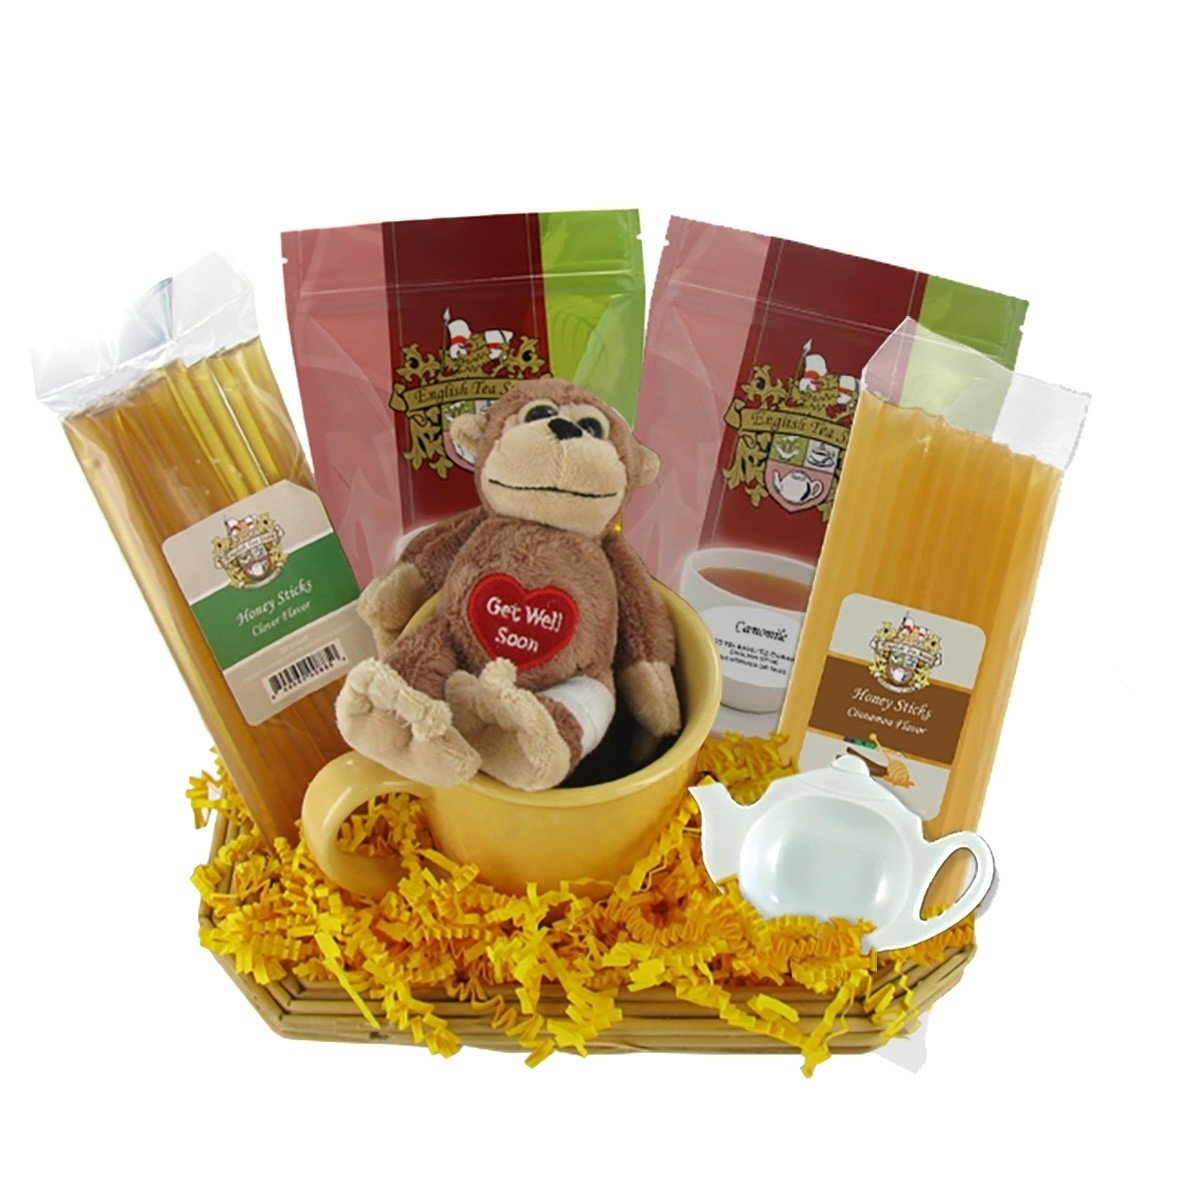 get well soon gift basket with stuffed toy